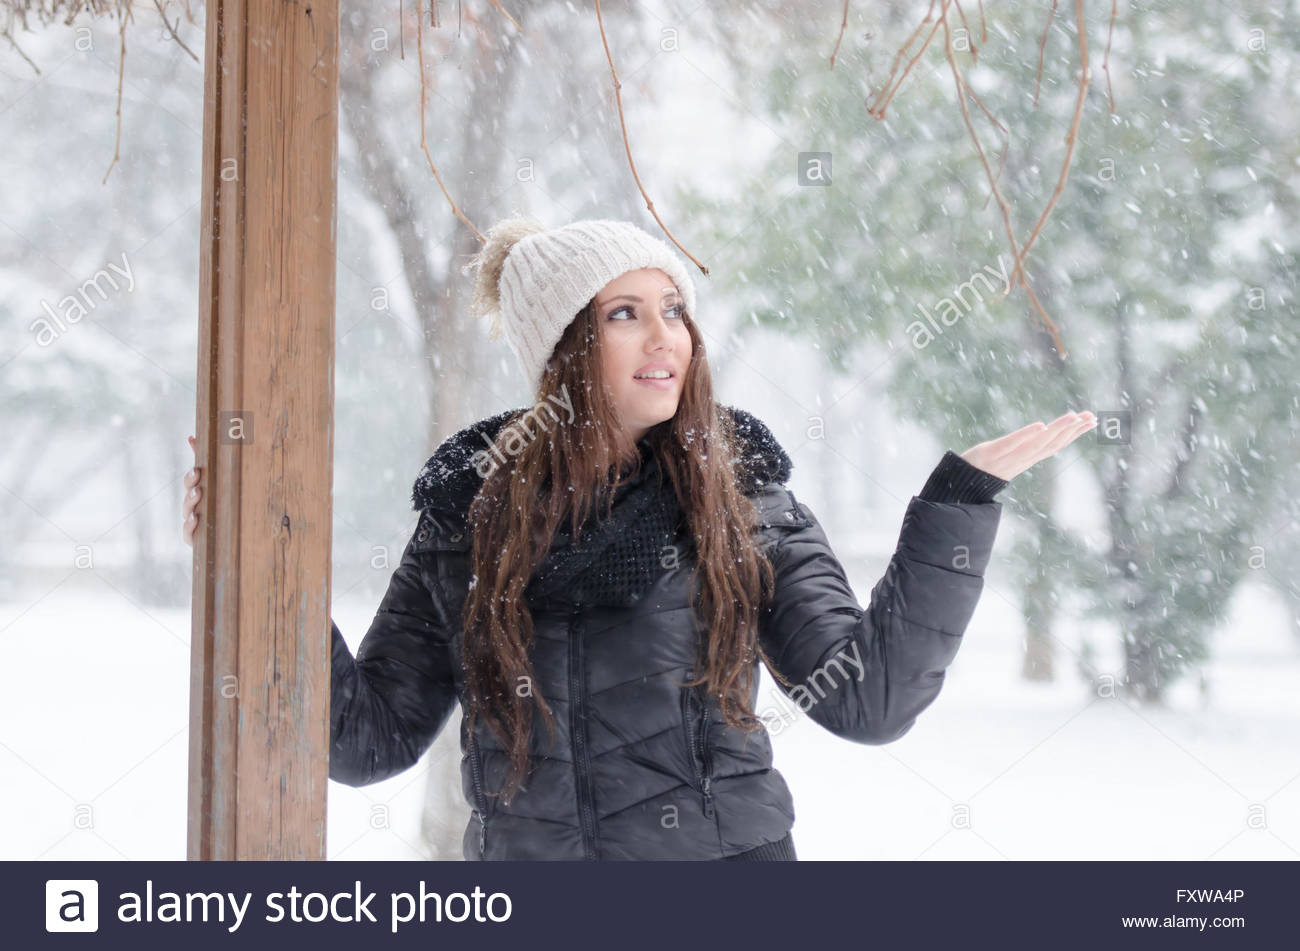 ca56a156ec Woman playing with the snow